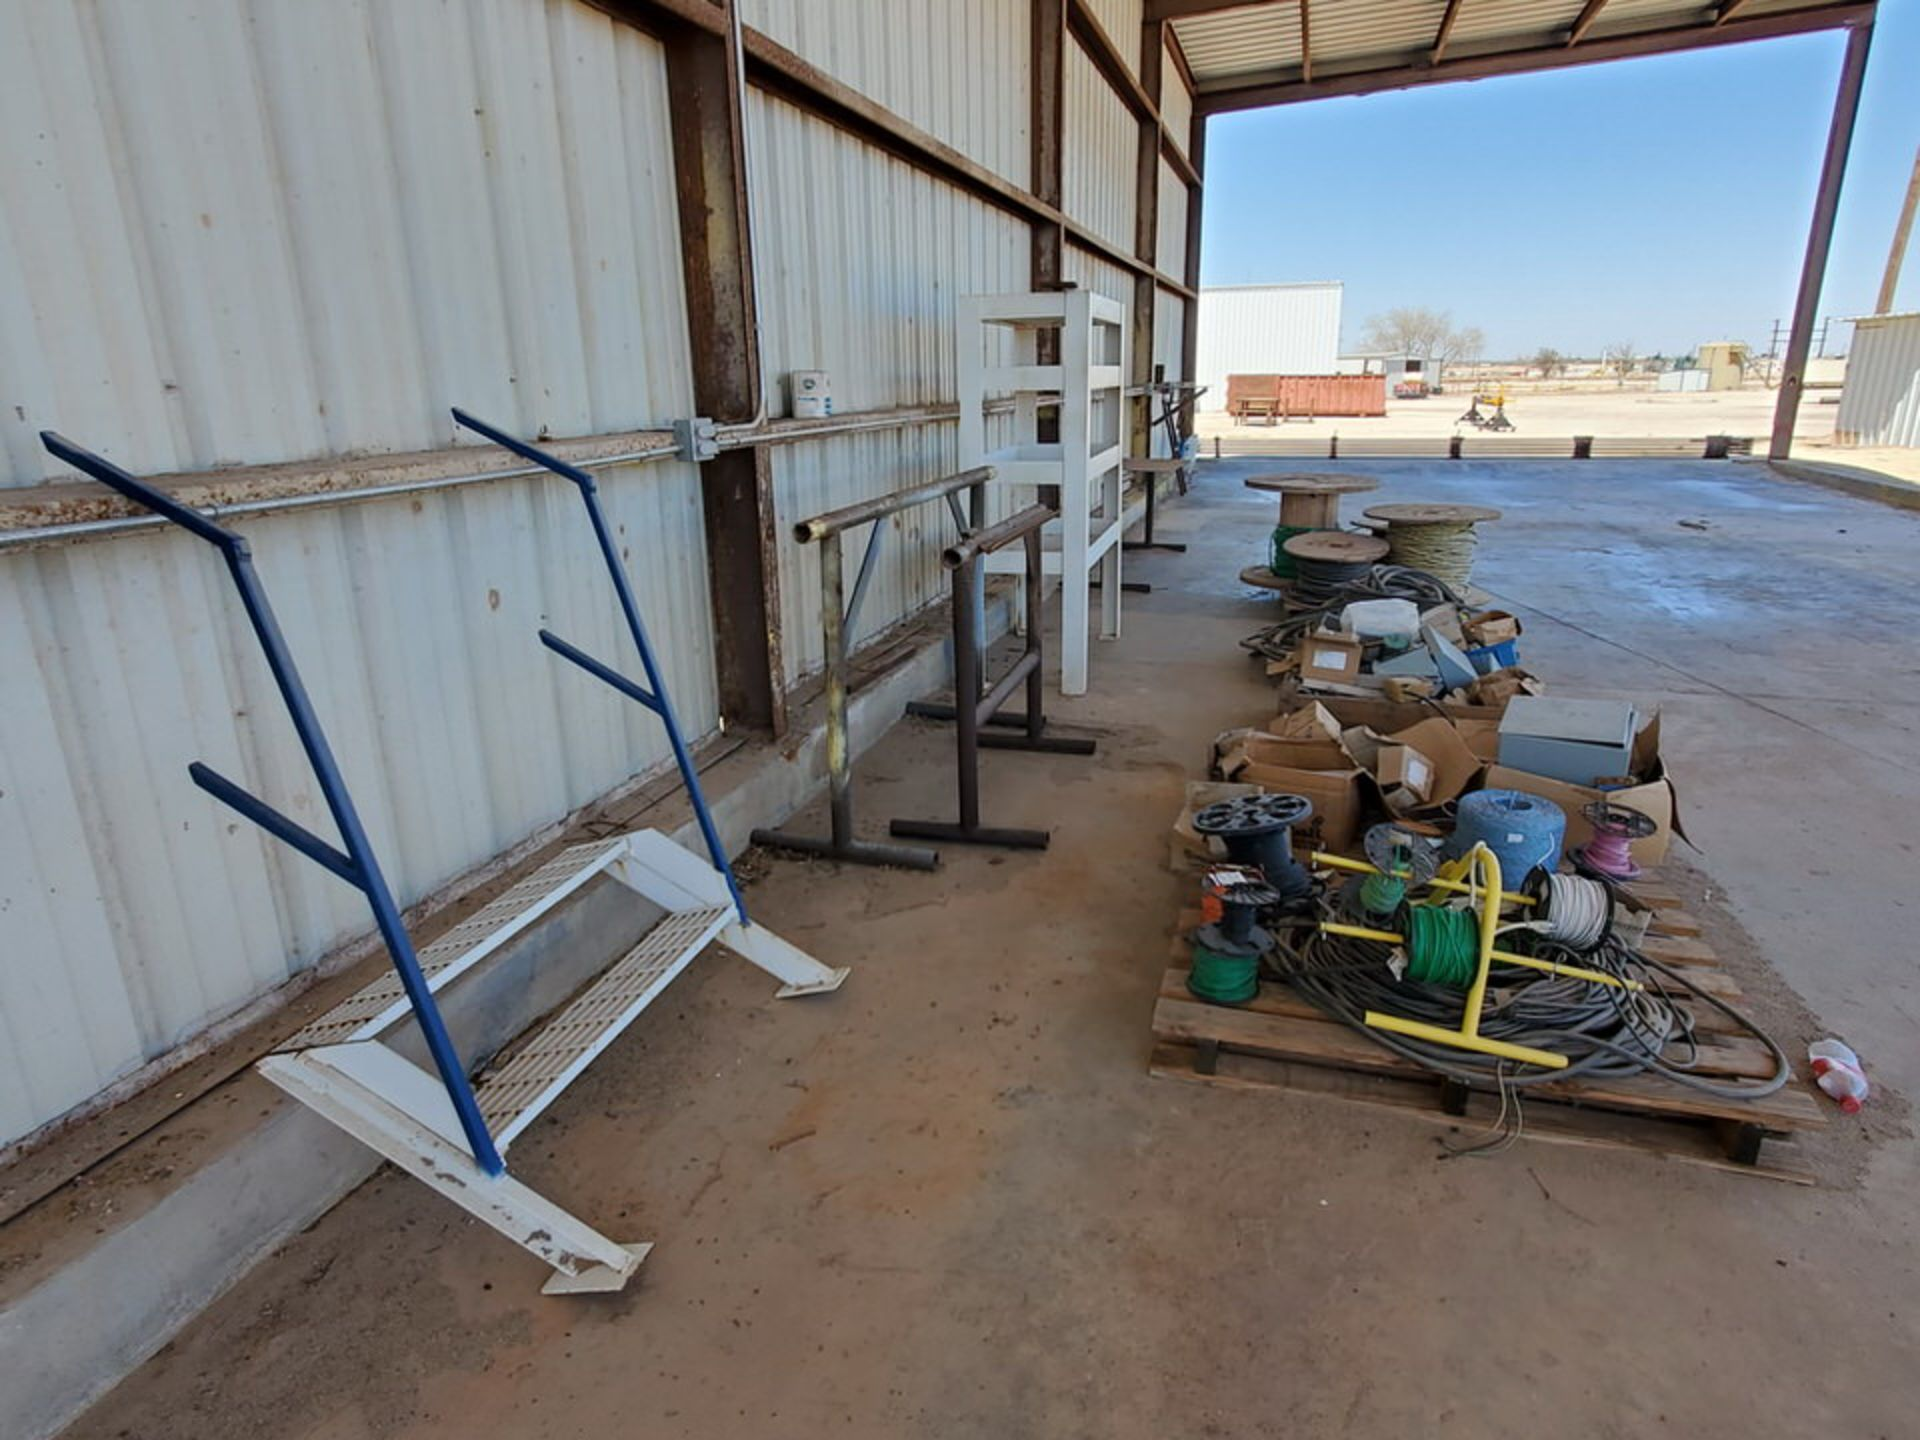 Misc. Matl. To Include But Not Limited To: Lift Basket, Welding Table, Sheet Metal, Ele Wire, Rope - Image 12 of 13